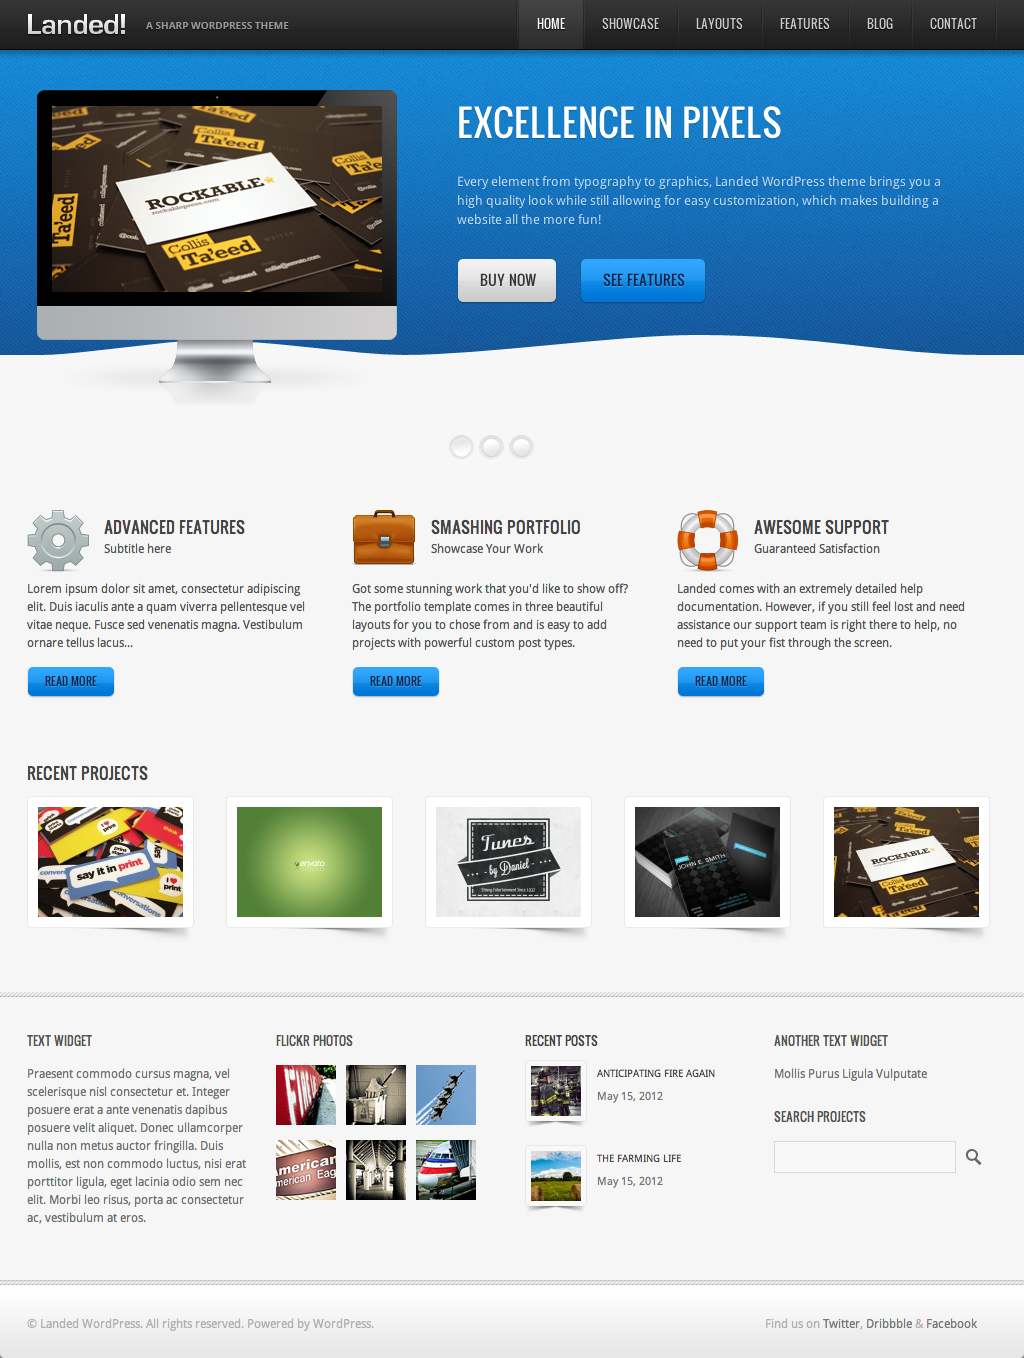 Landed - A Sharp WordPress Theme